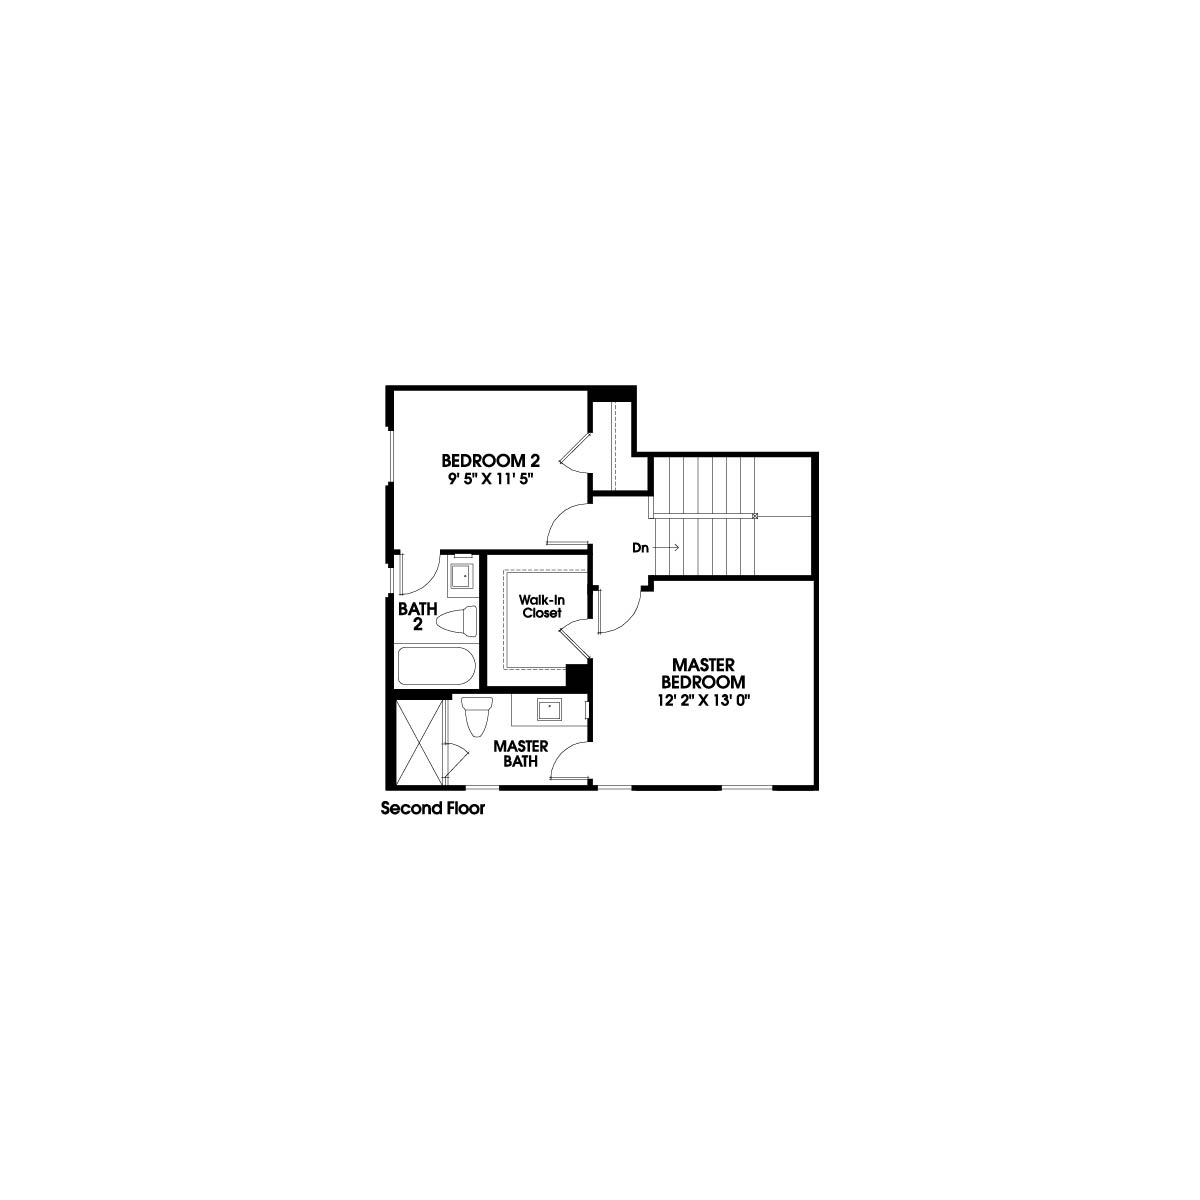 Second floor residence 2 floor plan | Holiday at New Haven in Ontario Ranch, CA | Brookfield Residential